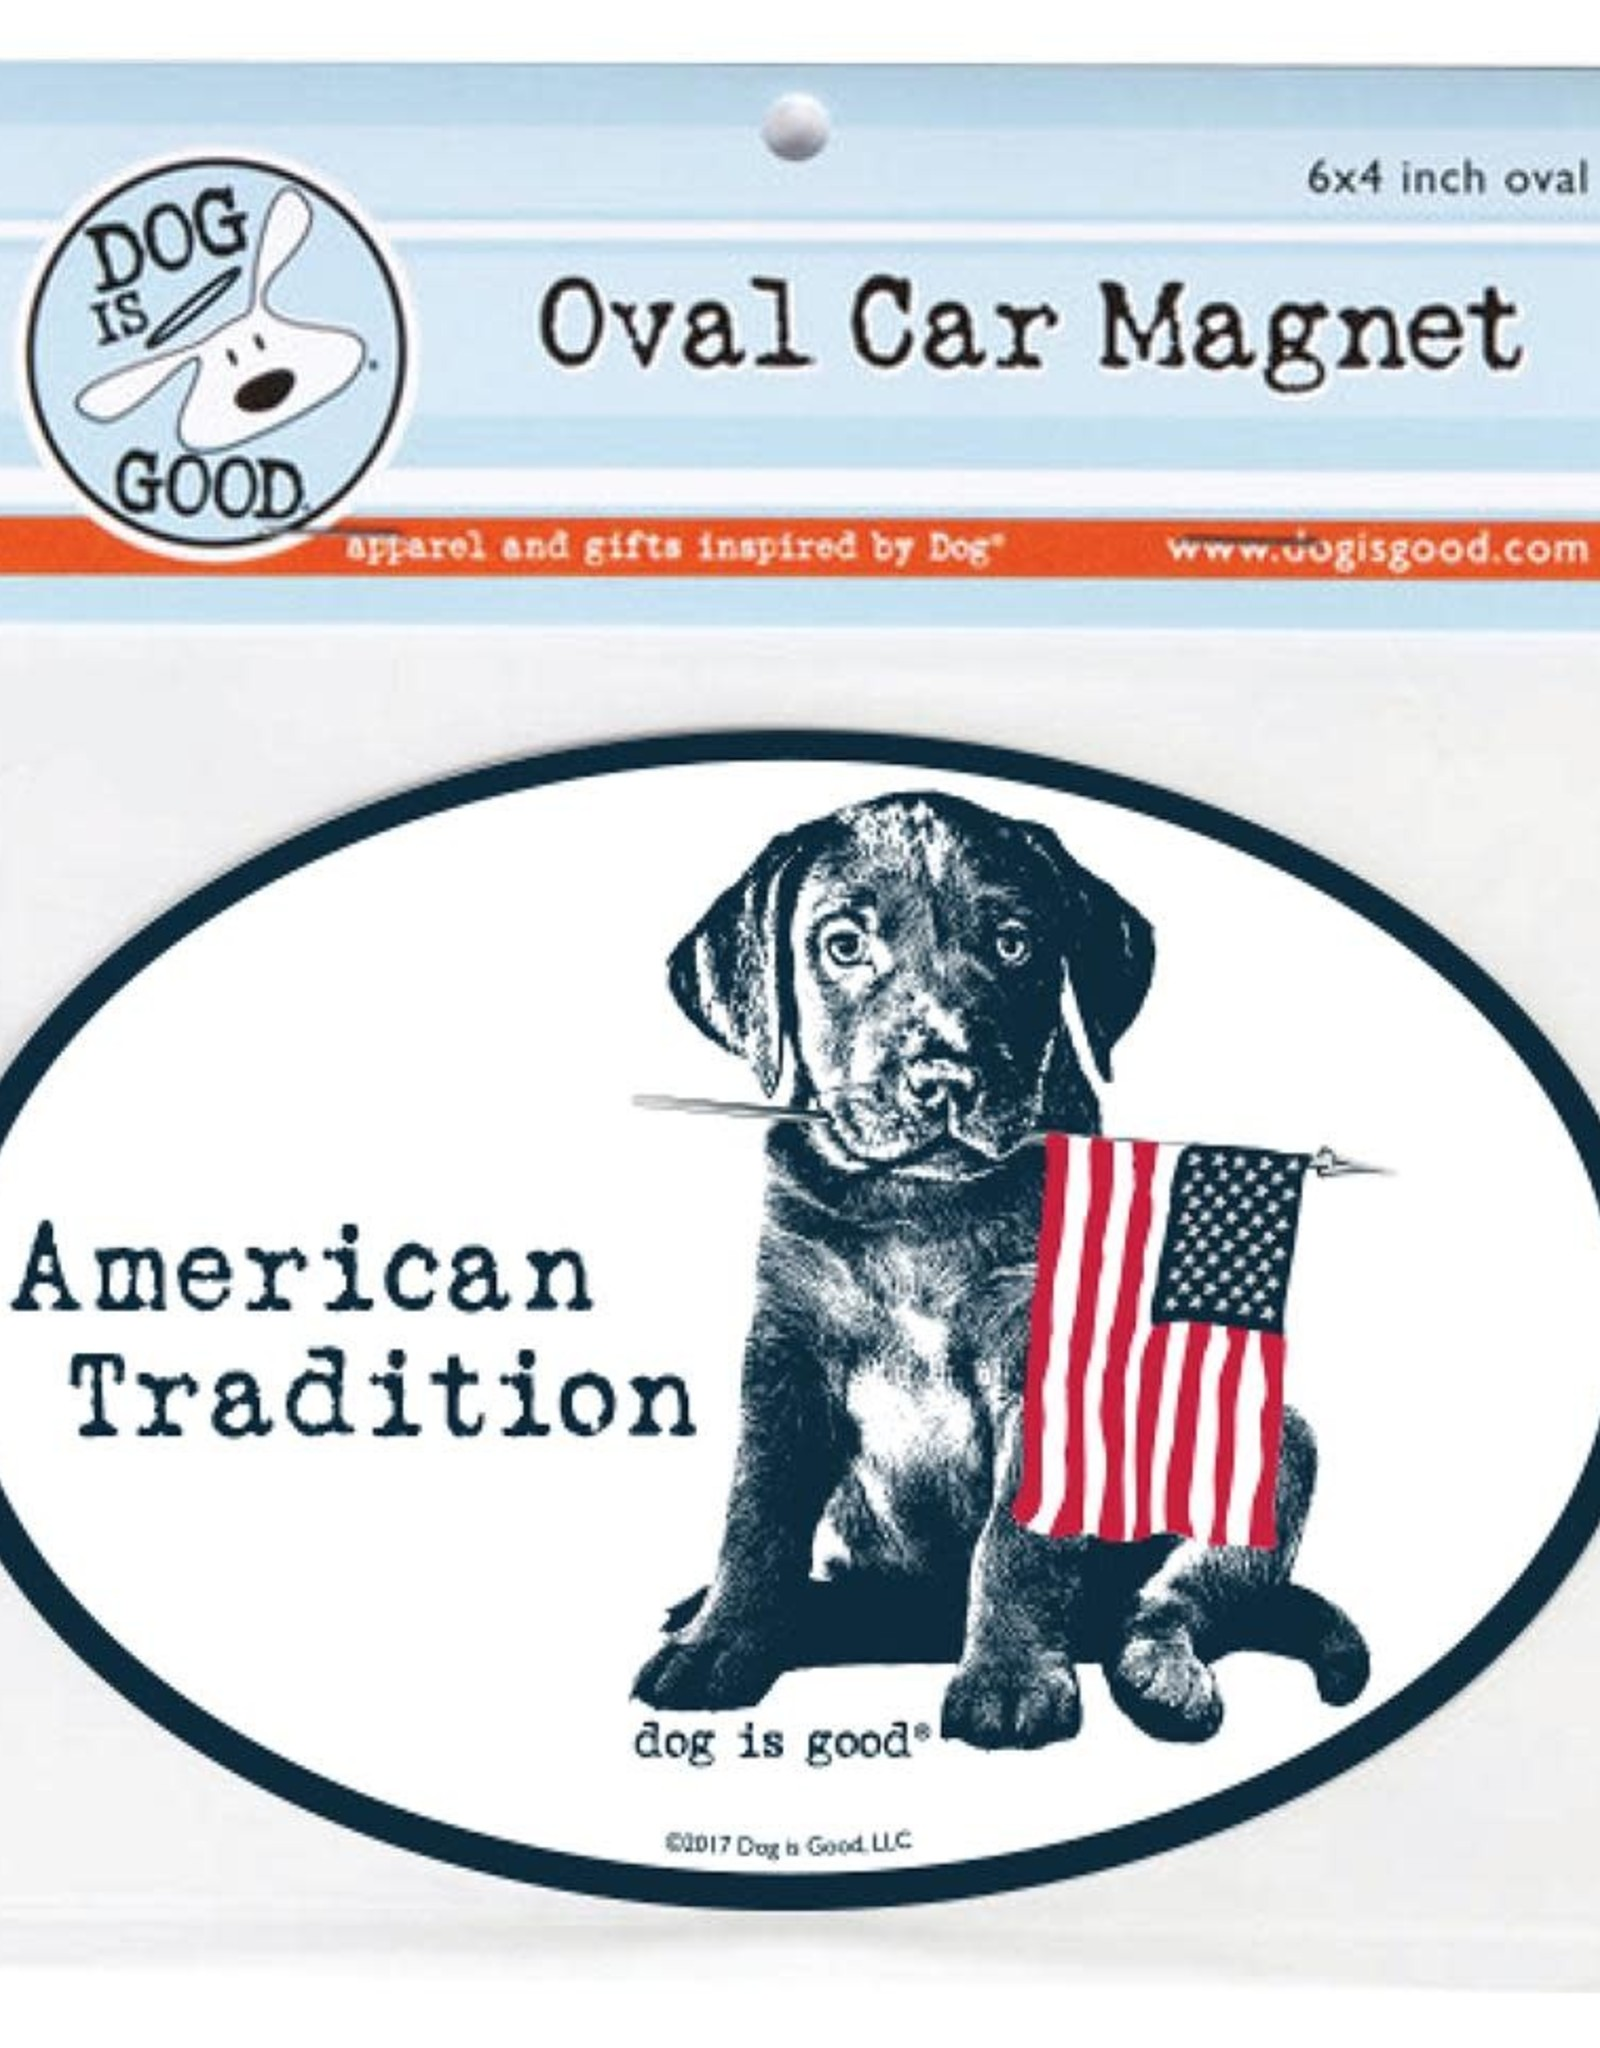 Dog Is Good Car Magnet: American Tradition